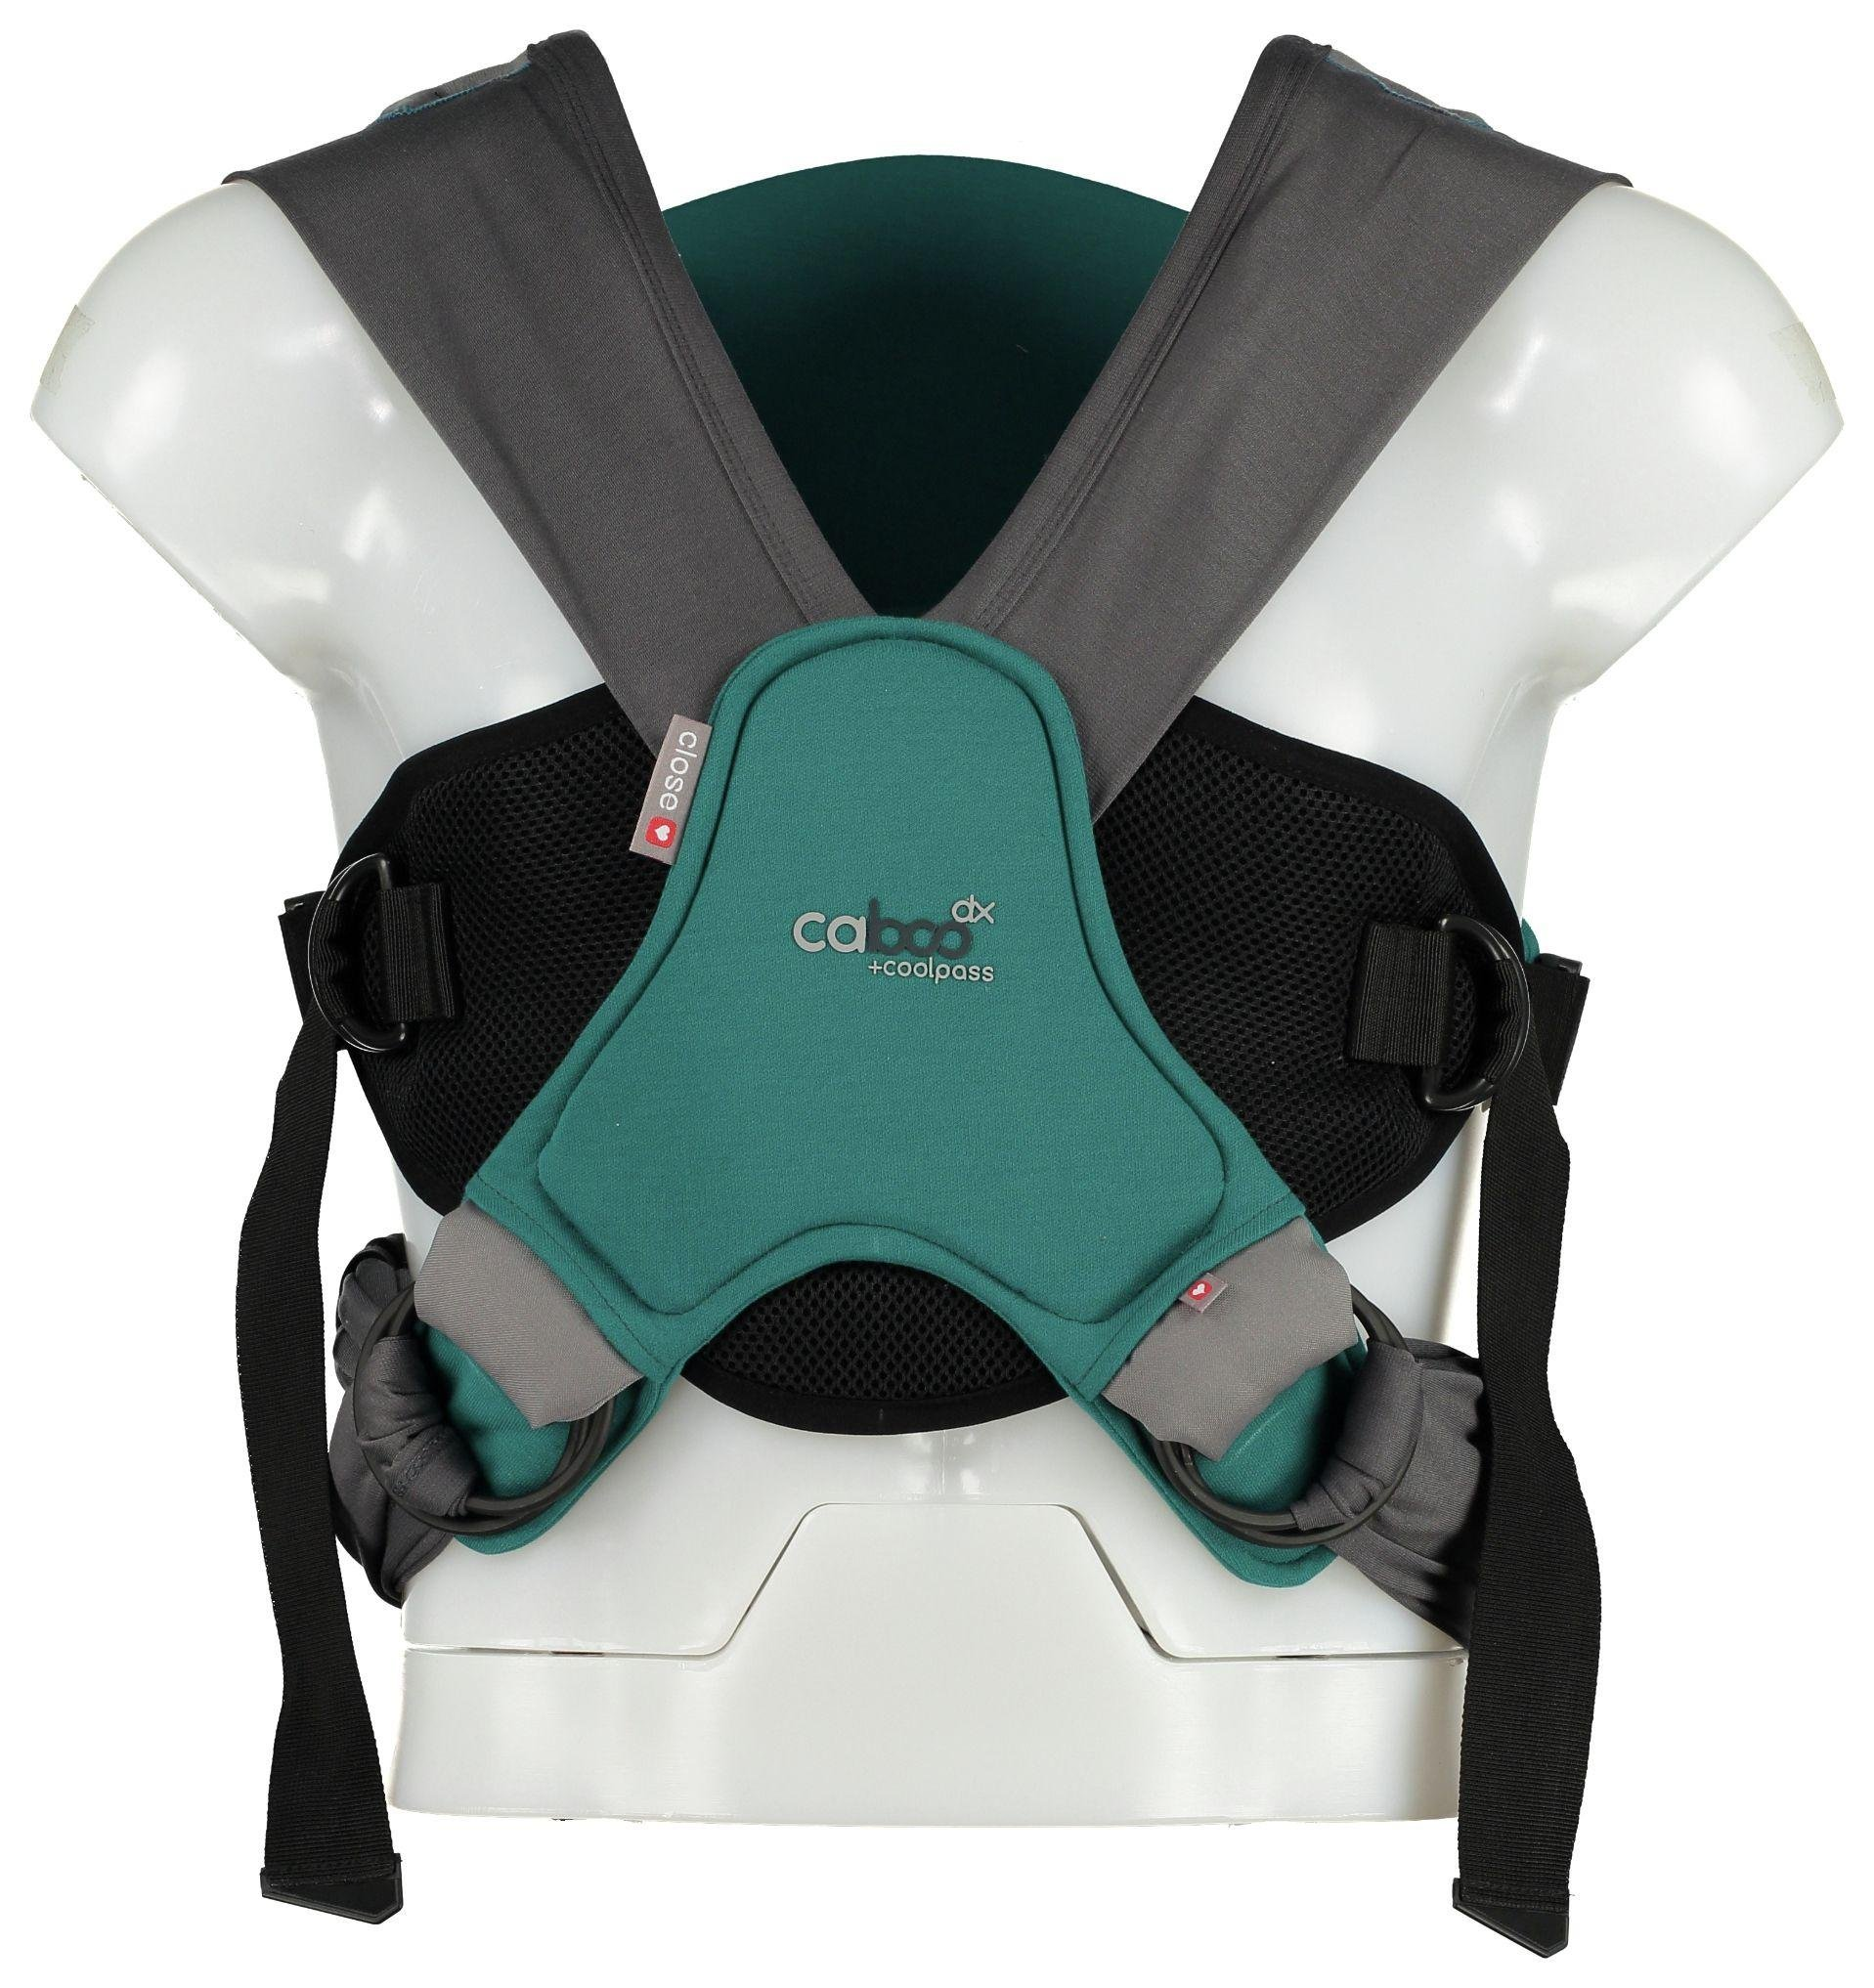 Caboo DX Coolpass Baby Carrier